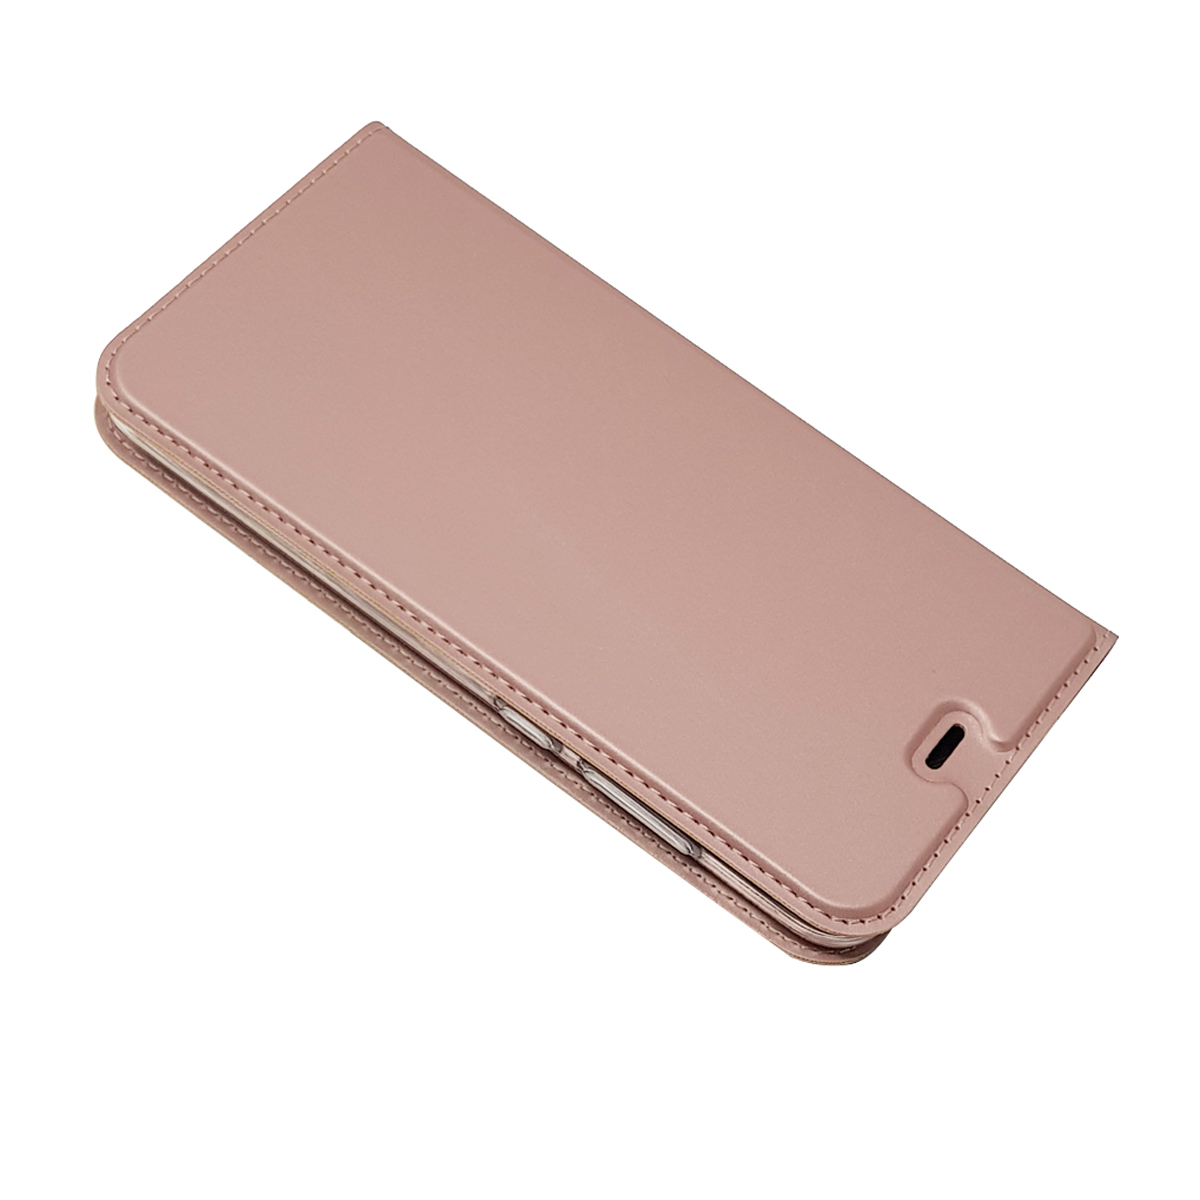 For Xiaomi Redmi Note 5A Case Leather Flip Case for Xiaomi Redmi Note 5A Xnyocn Wallet Funda Xiomi Redmi Note 5A 2GB 16GB 5 5 in Flip Cases from Cellphones Telecommunications